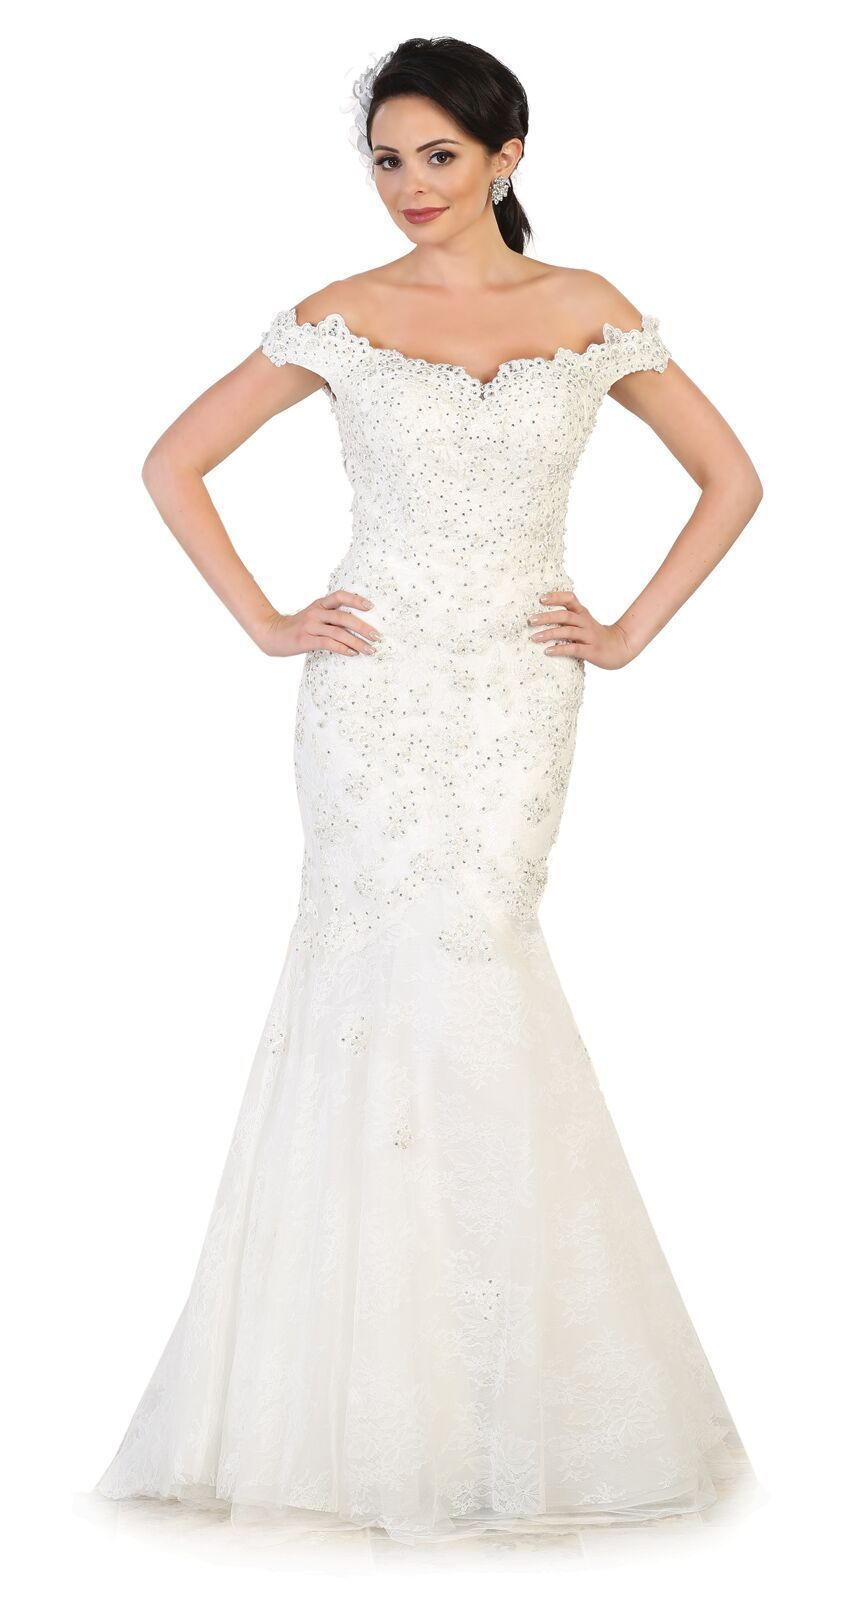 Awesome amazing thedressoutlet wedding long gown simple check